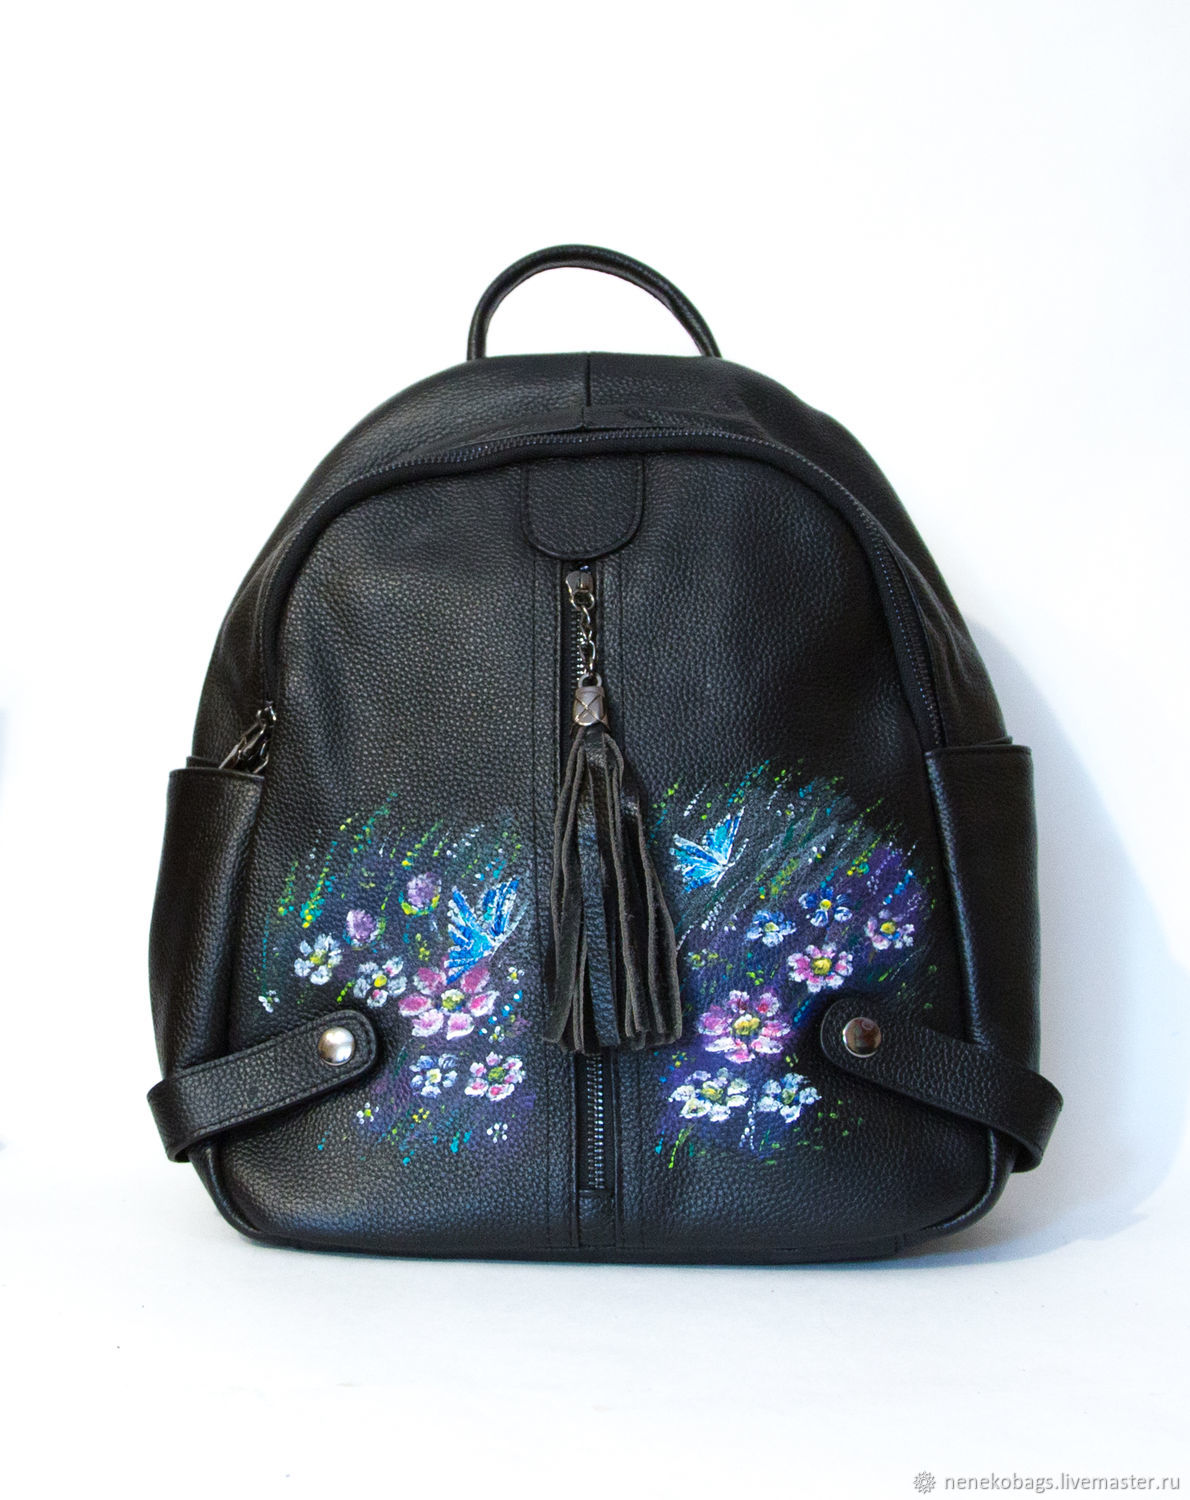 9526b4b460 Backpacks handmade livemaster handmade buy backpack leather black hand  painted flower meadow jpg 1190x1500 Hand painted